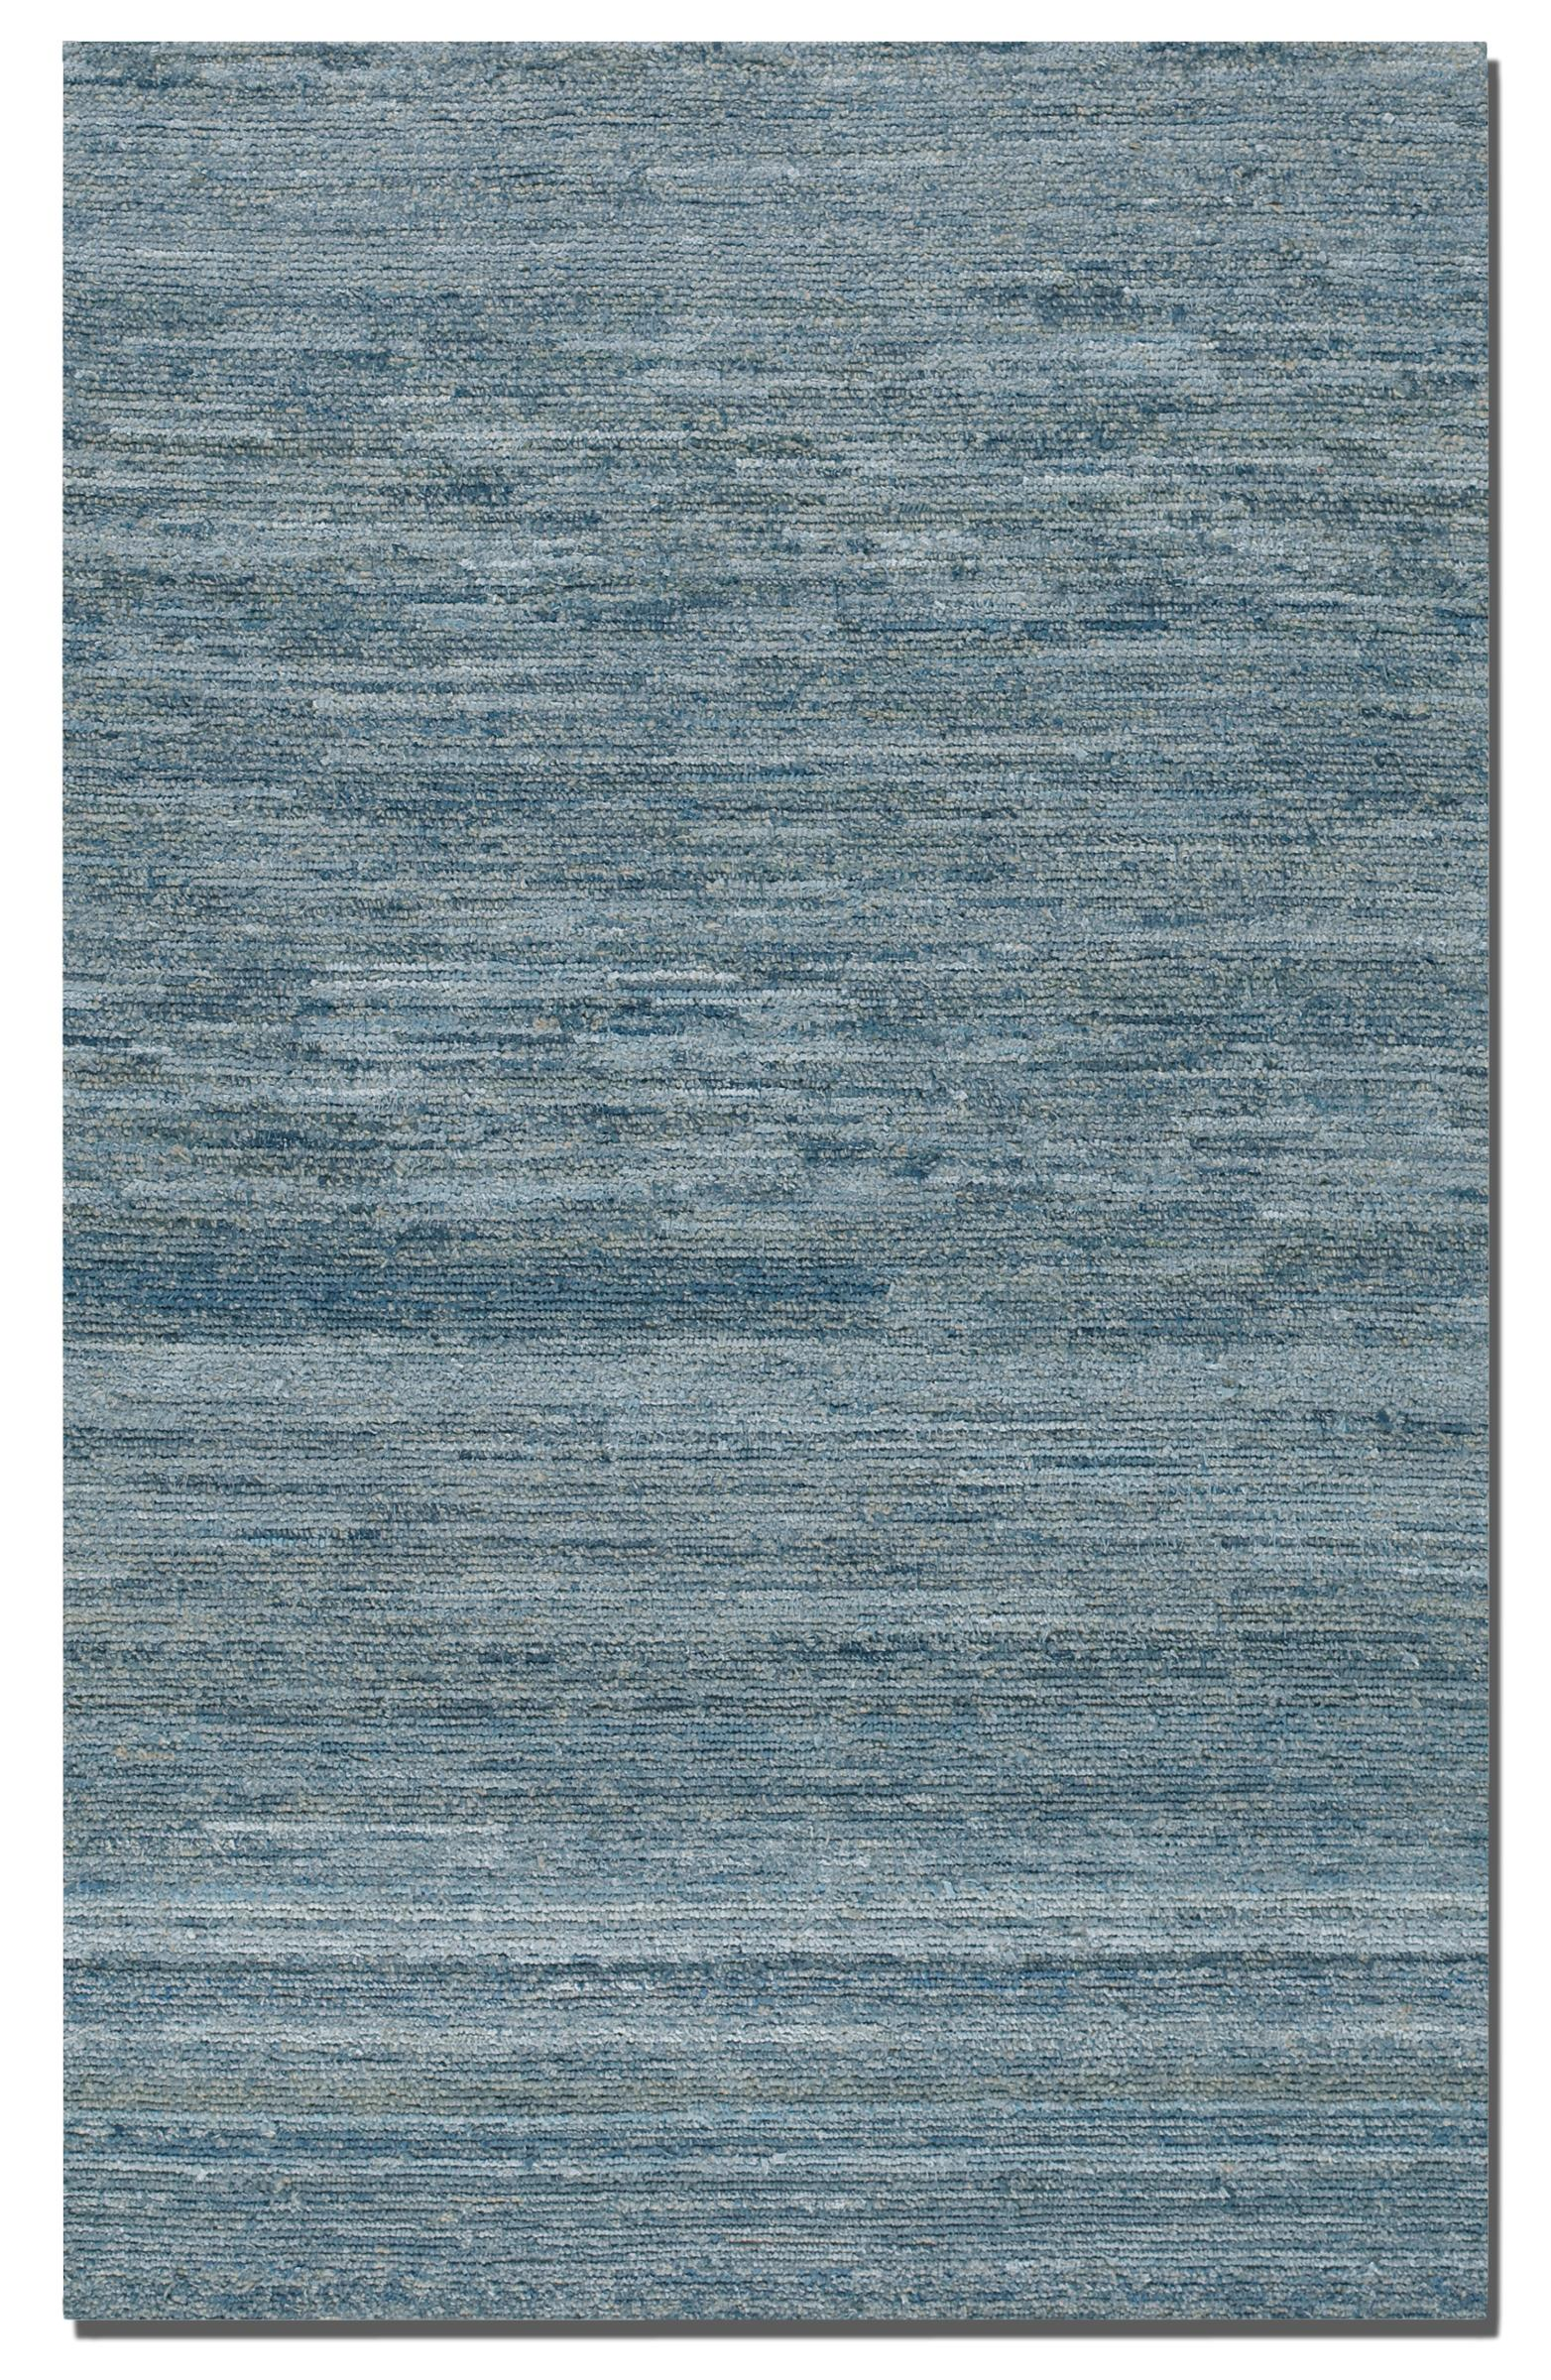 Uttermost Rugs Genoa 5 X 8 - Item Number: 73013-5